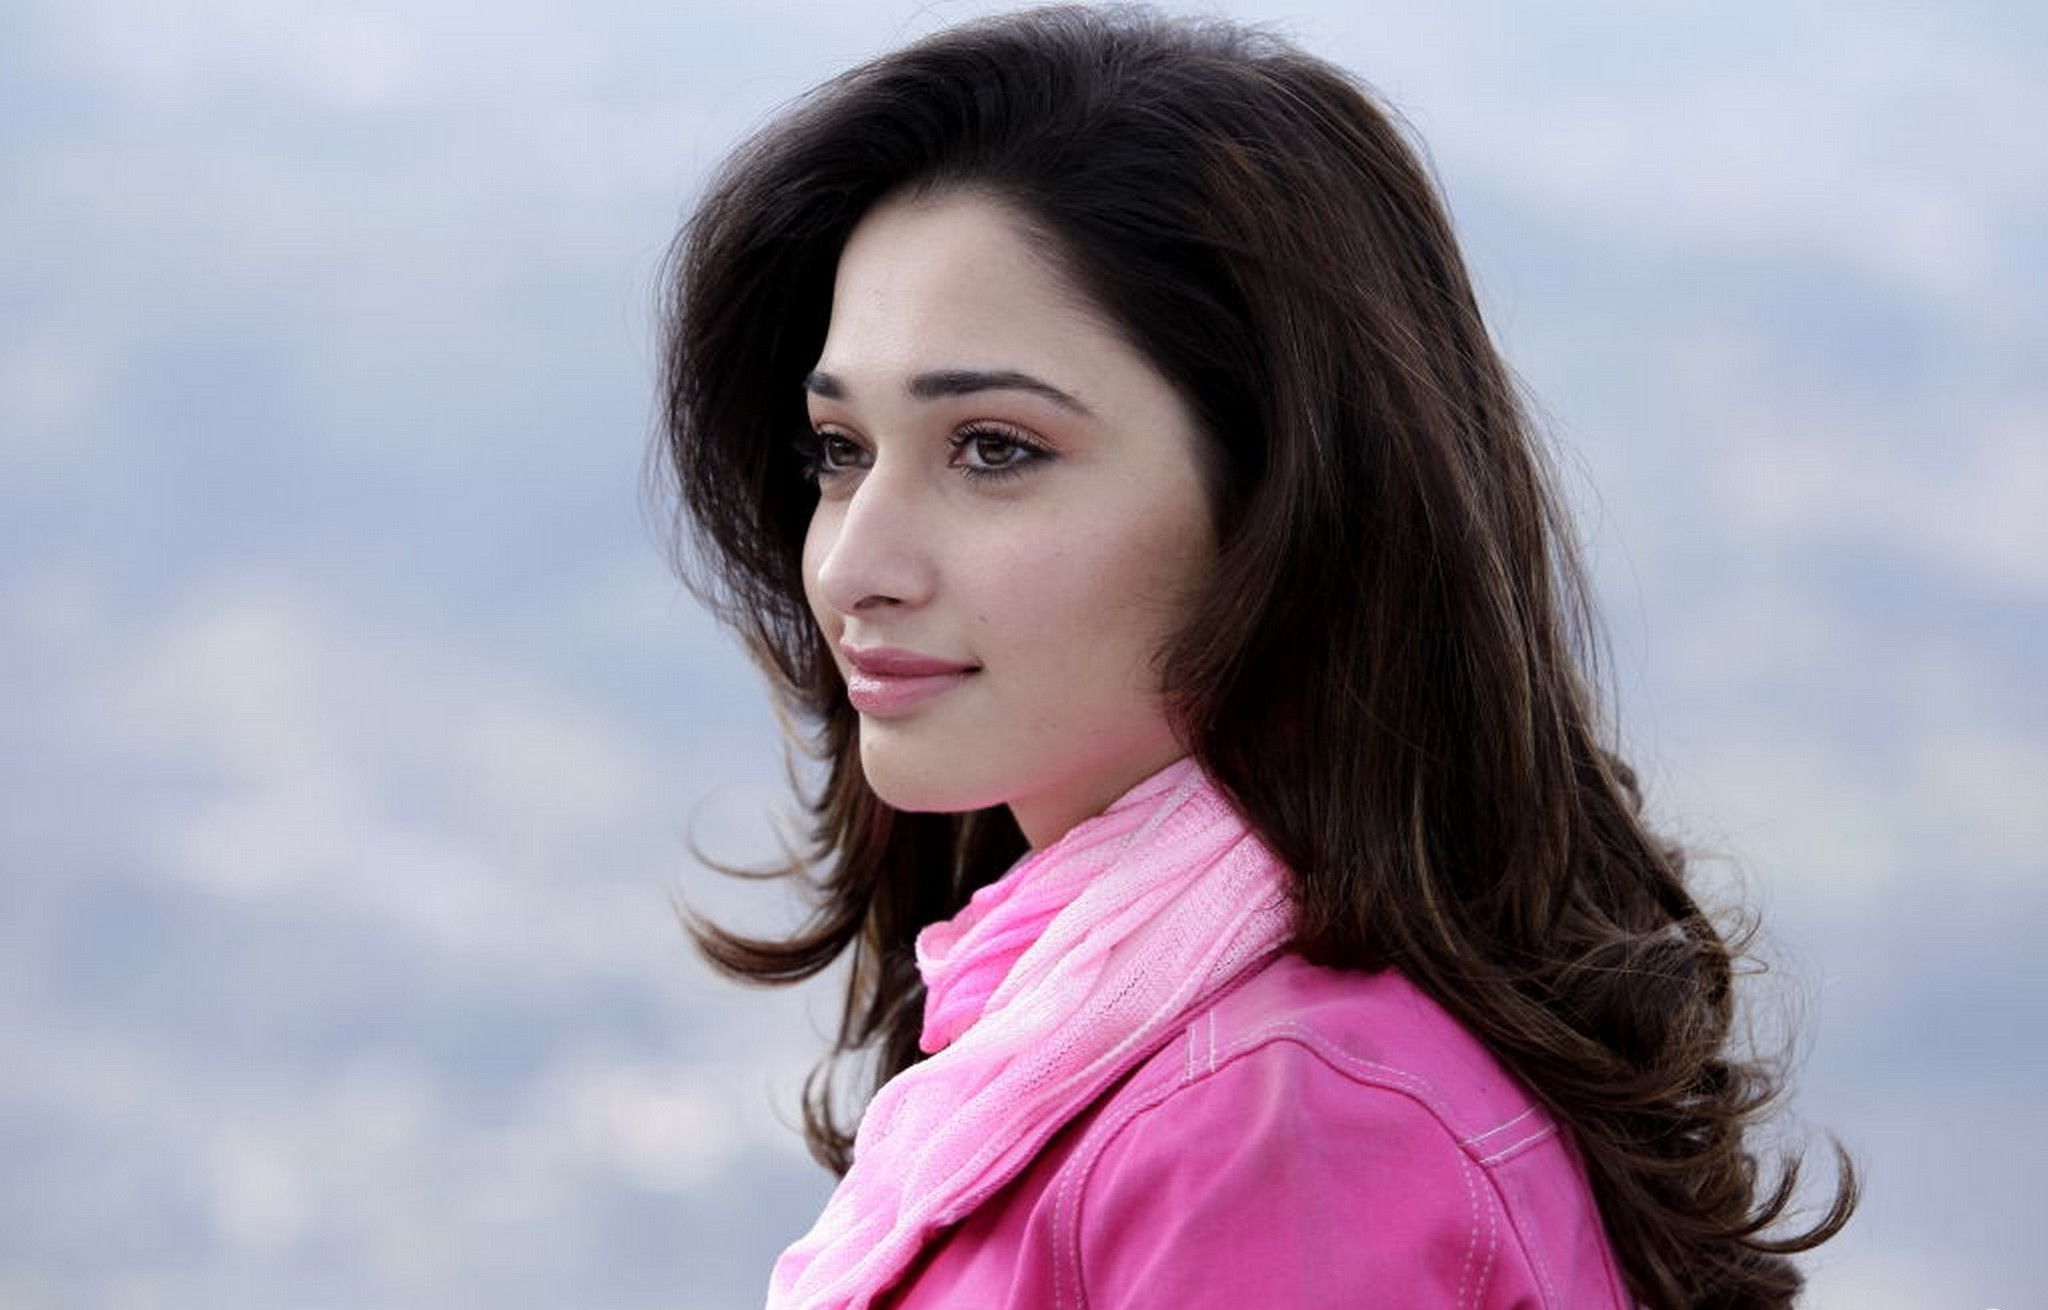 tamanna bhatia wallpaper | wallpapers | pinterest | wallpaper